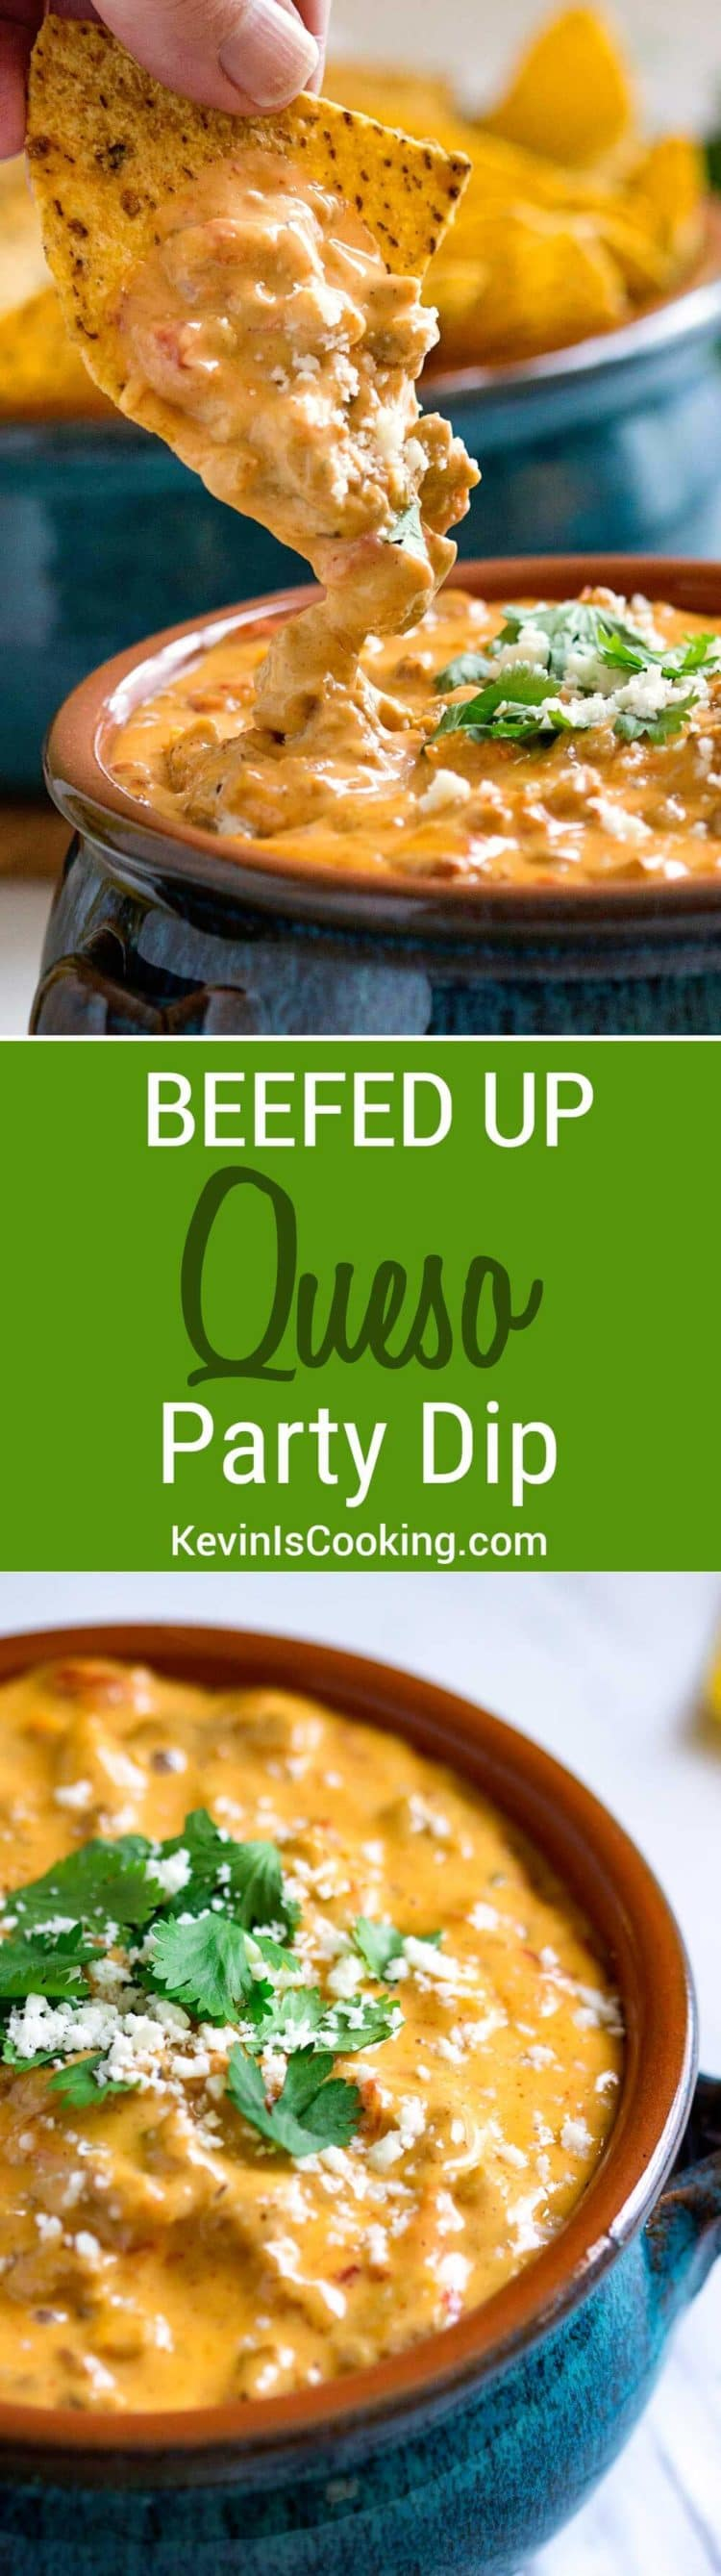 This is a super easy and beefed up Beef Queso Dip perfect for any party, on top of french fries, baked potatoes or steamed vegetables. We can't stop dipping!